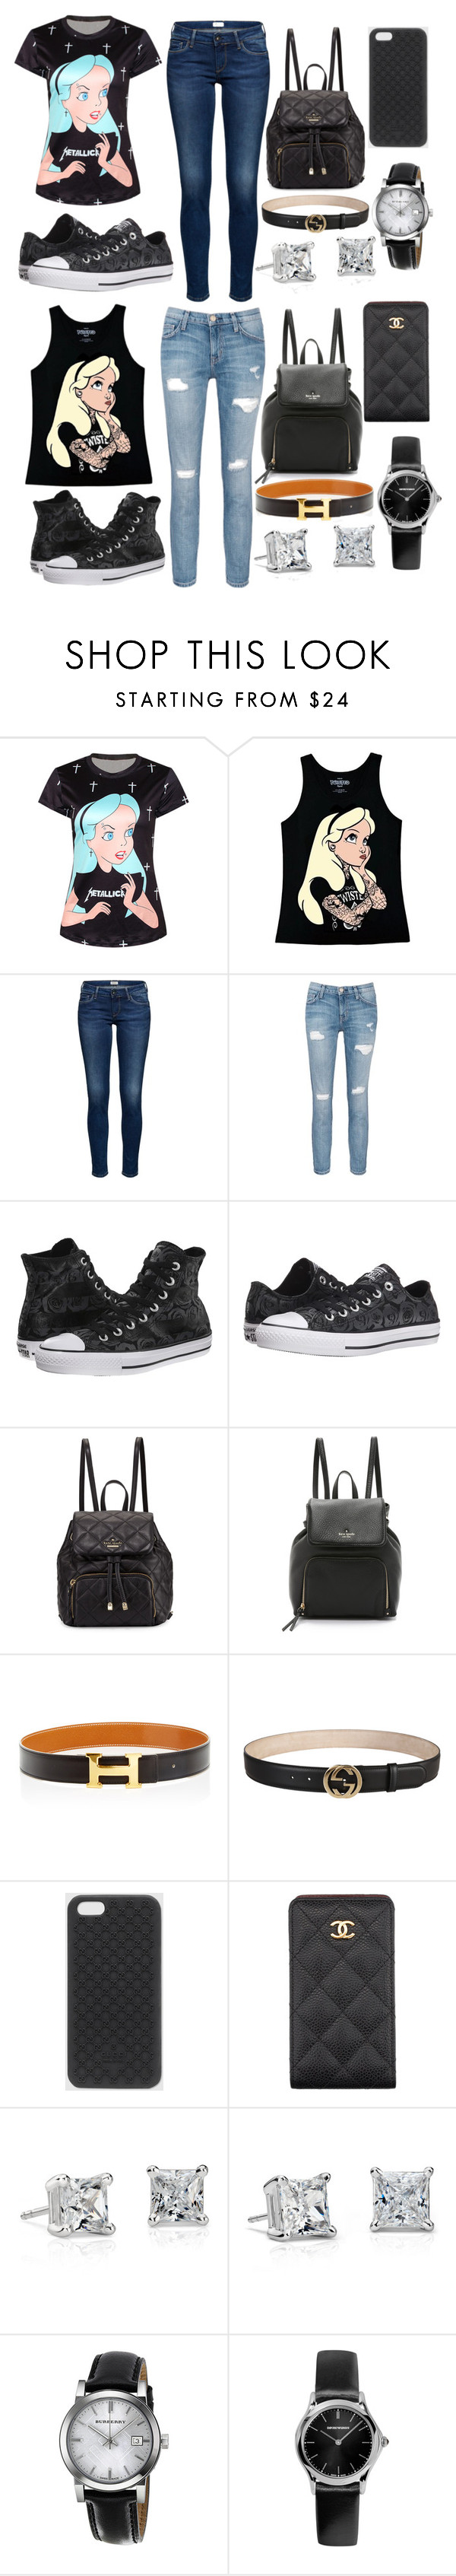 """""""Out with the Bestie """" by neilaninewsome ❤ liked on Polyvore featuring Disney, Current/Elliott, Converse, Kate Spade, Hermès, Gucci, Chanel, Blue Nile, Burberry and Emporio Armani"""